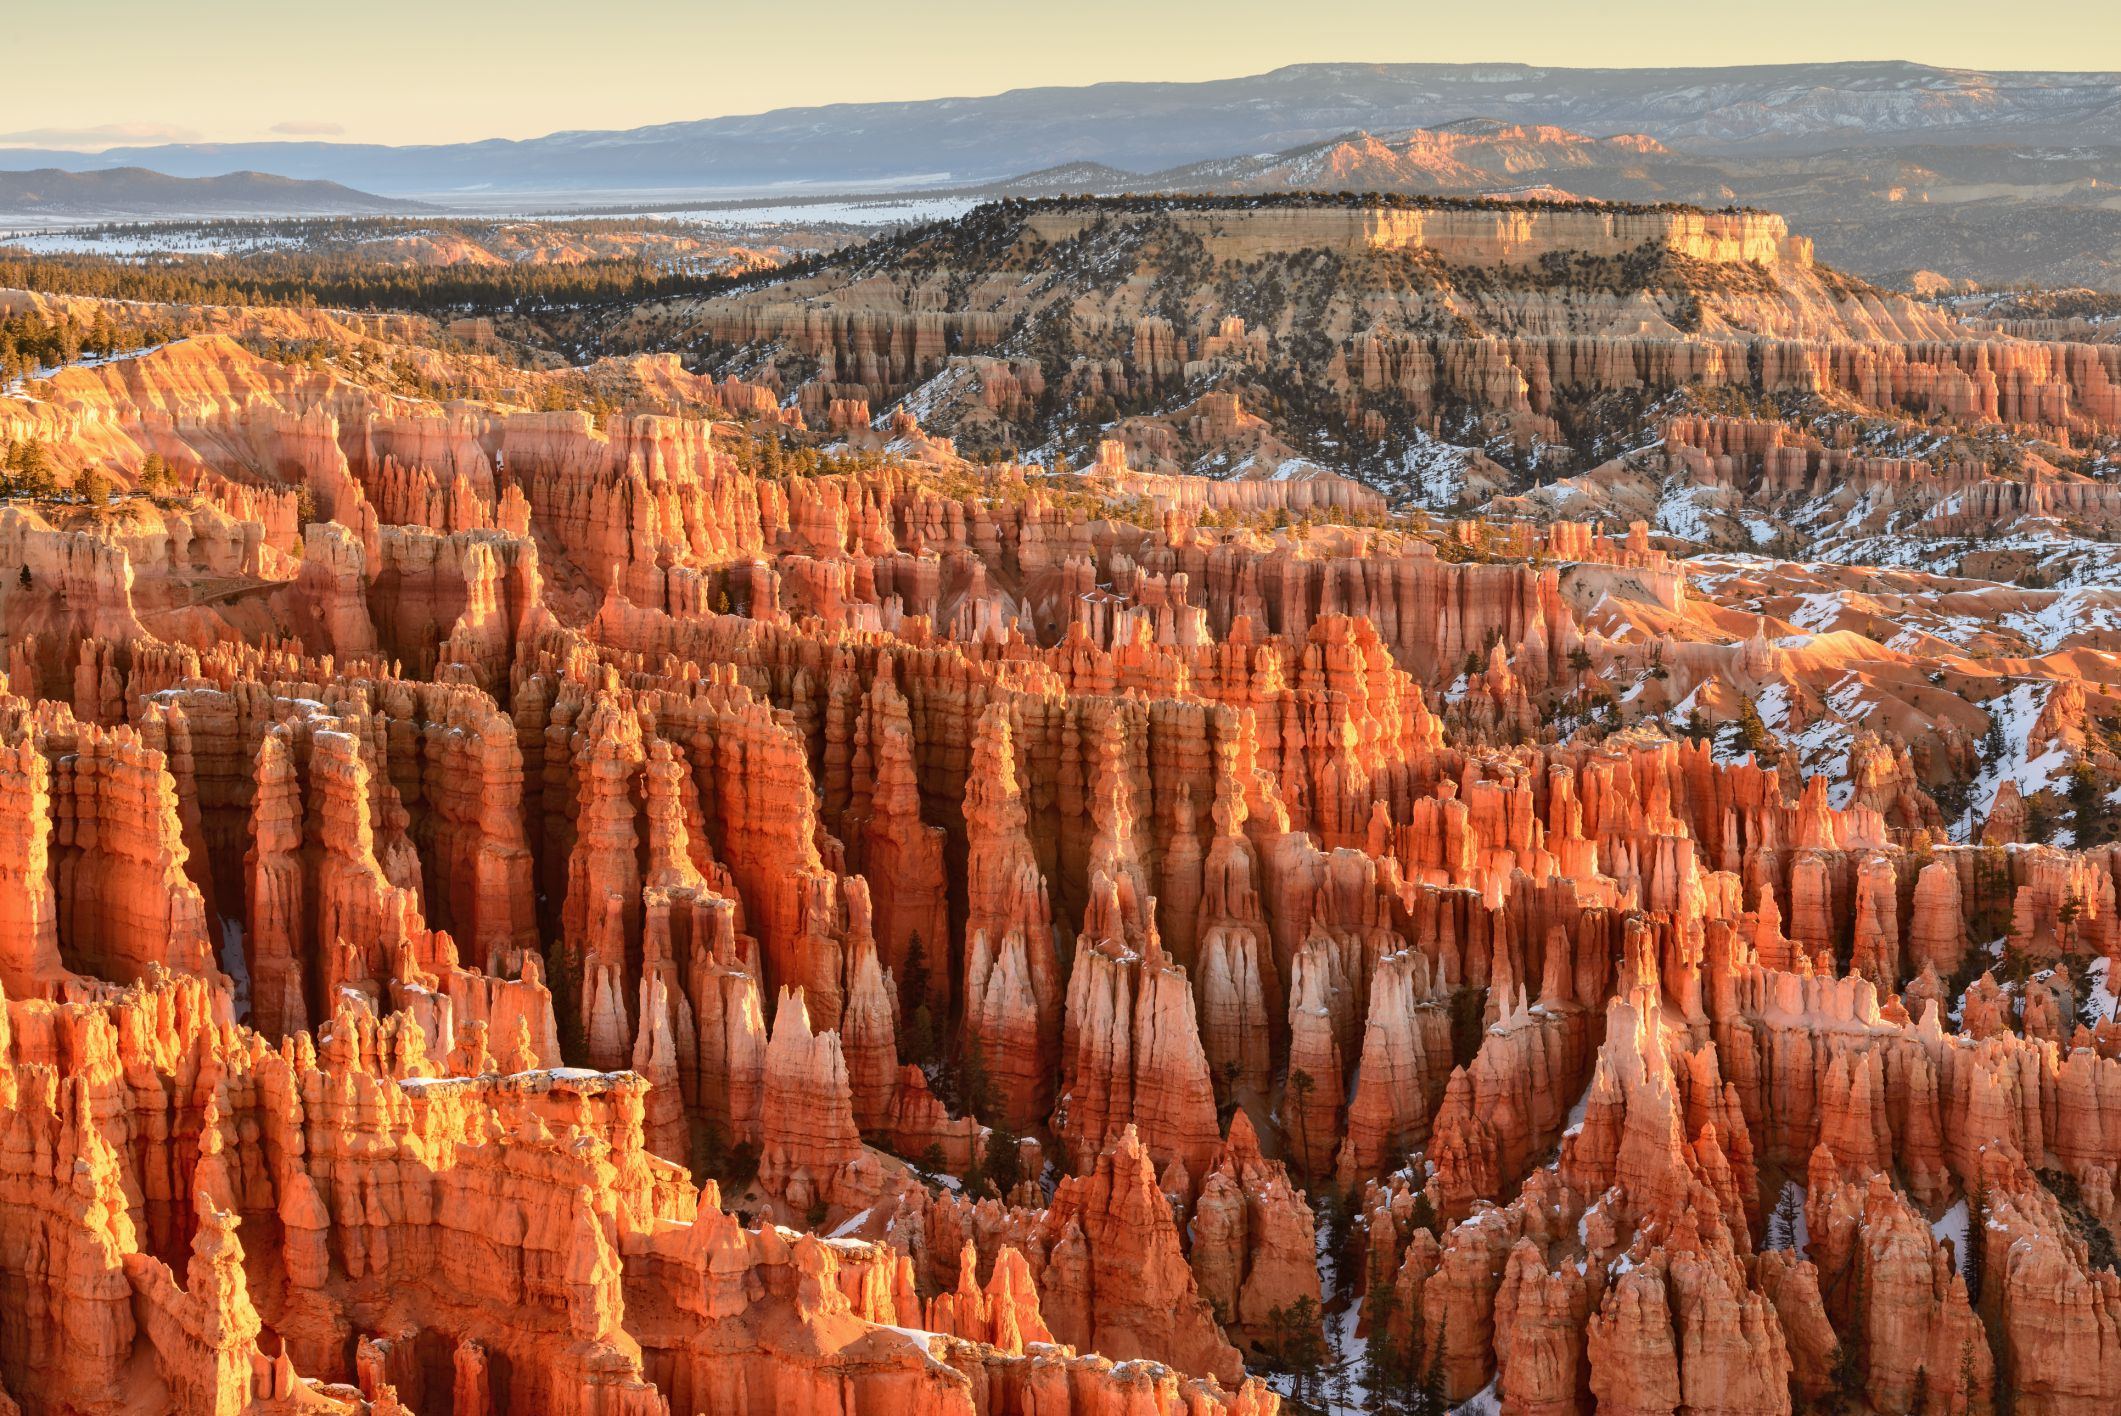 bryce new closures announces winter cabins photo national lodging canyon season park